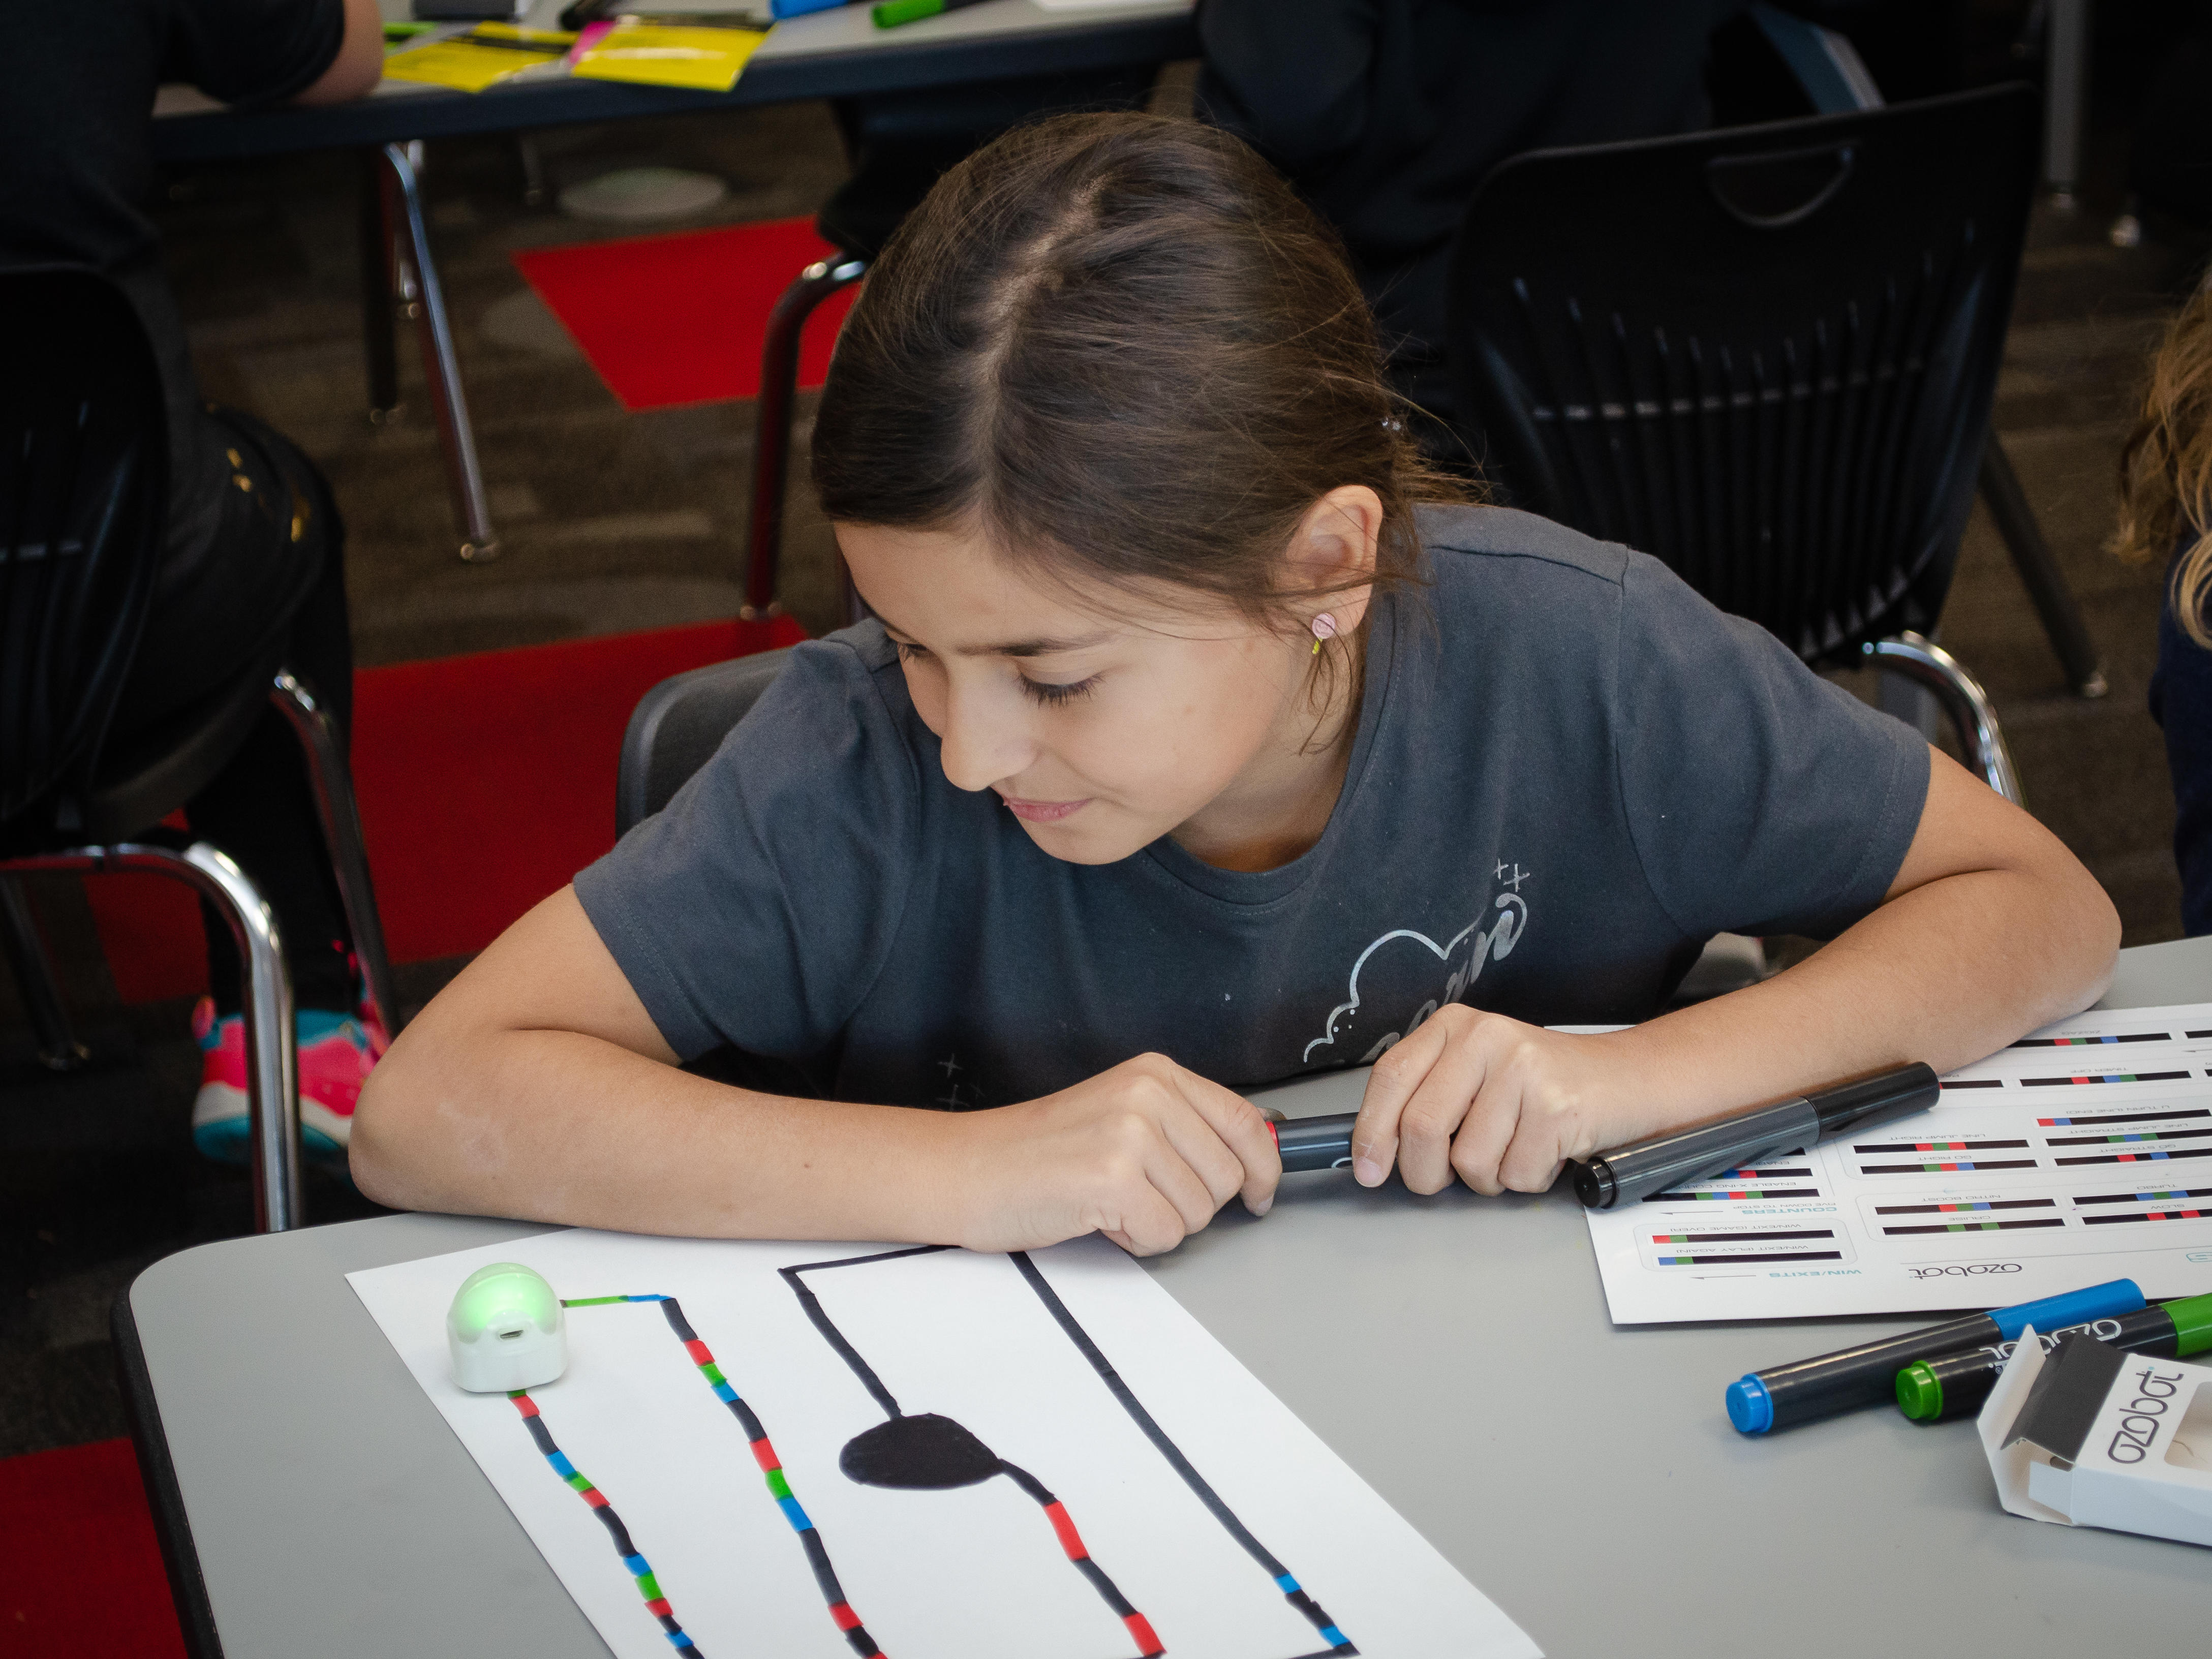 Coding Ozobots in the Library